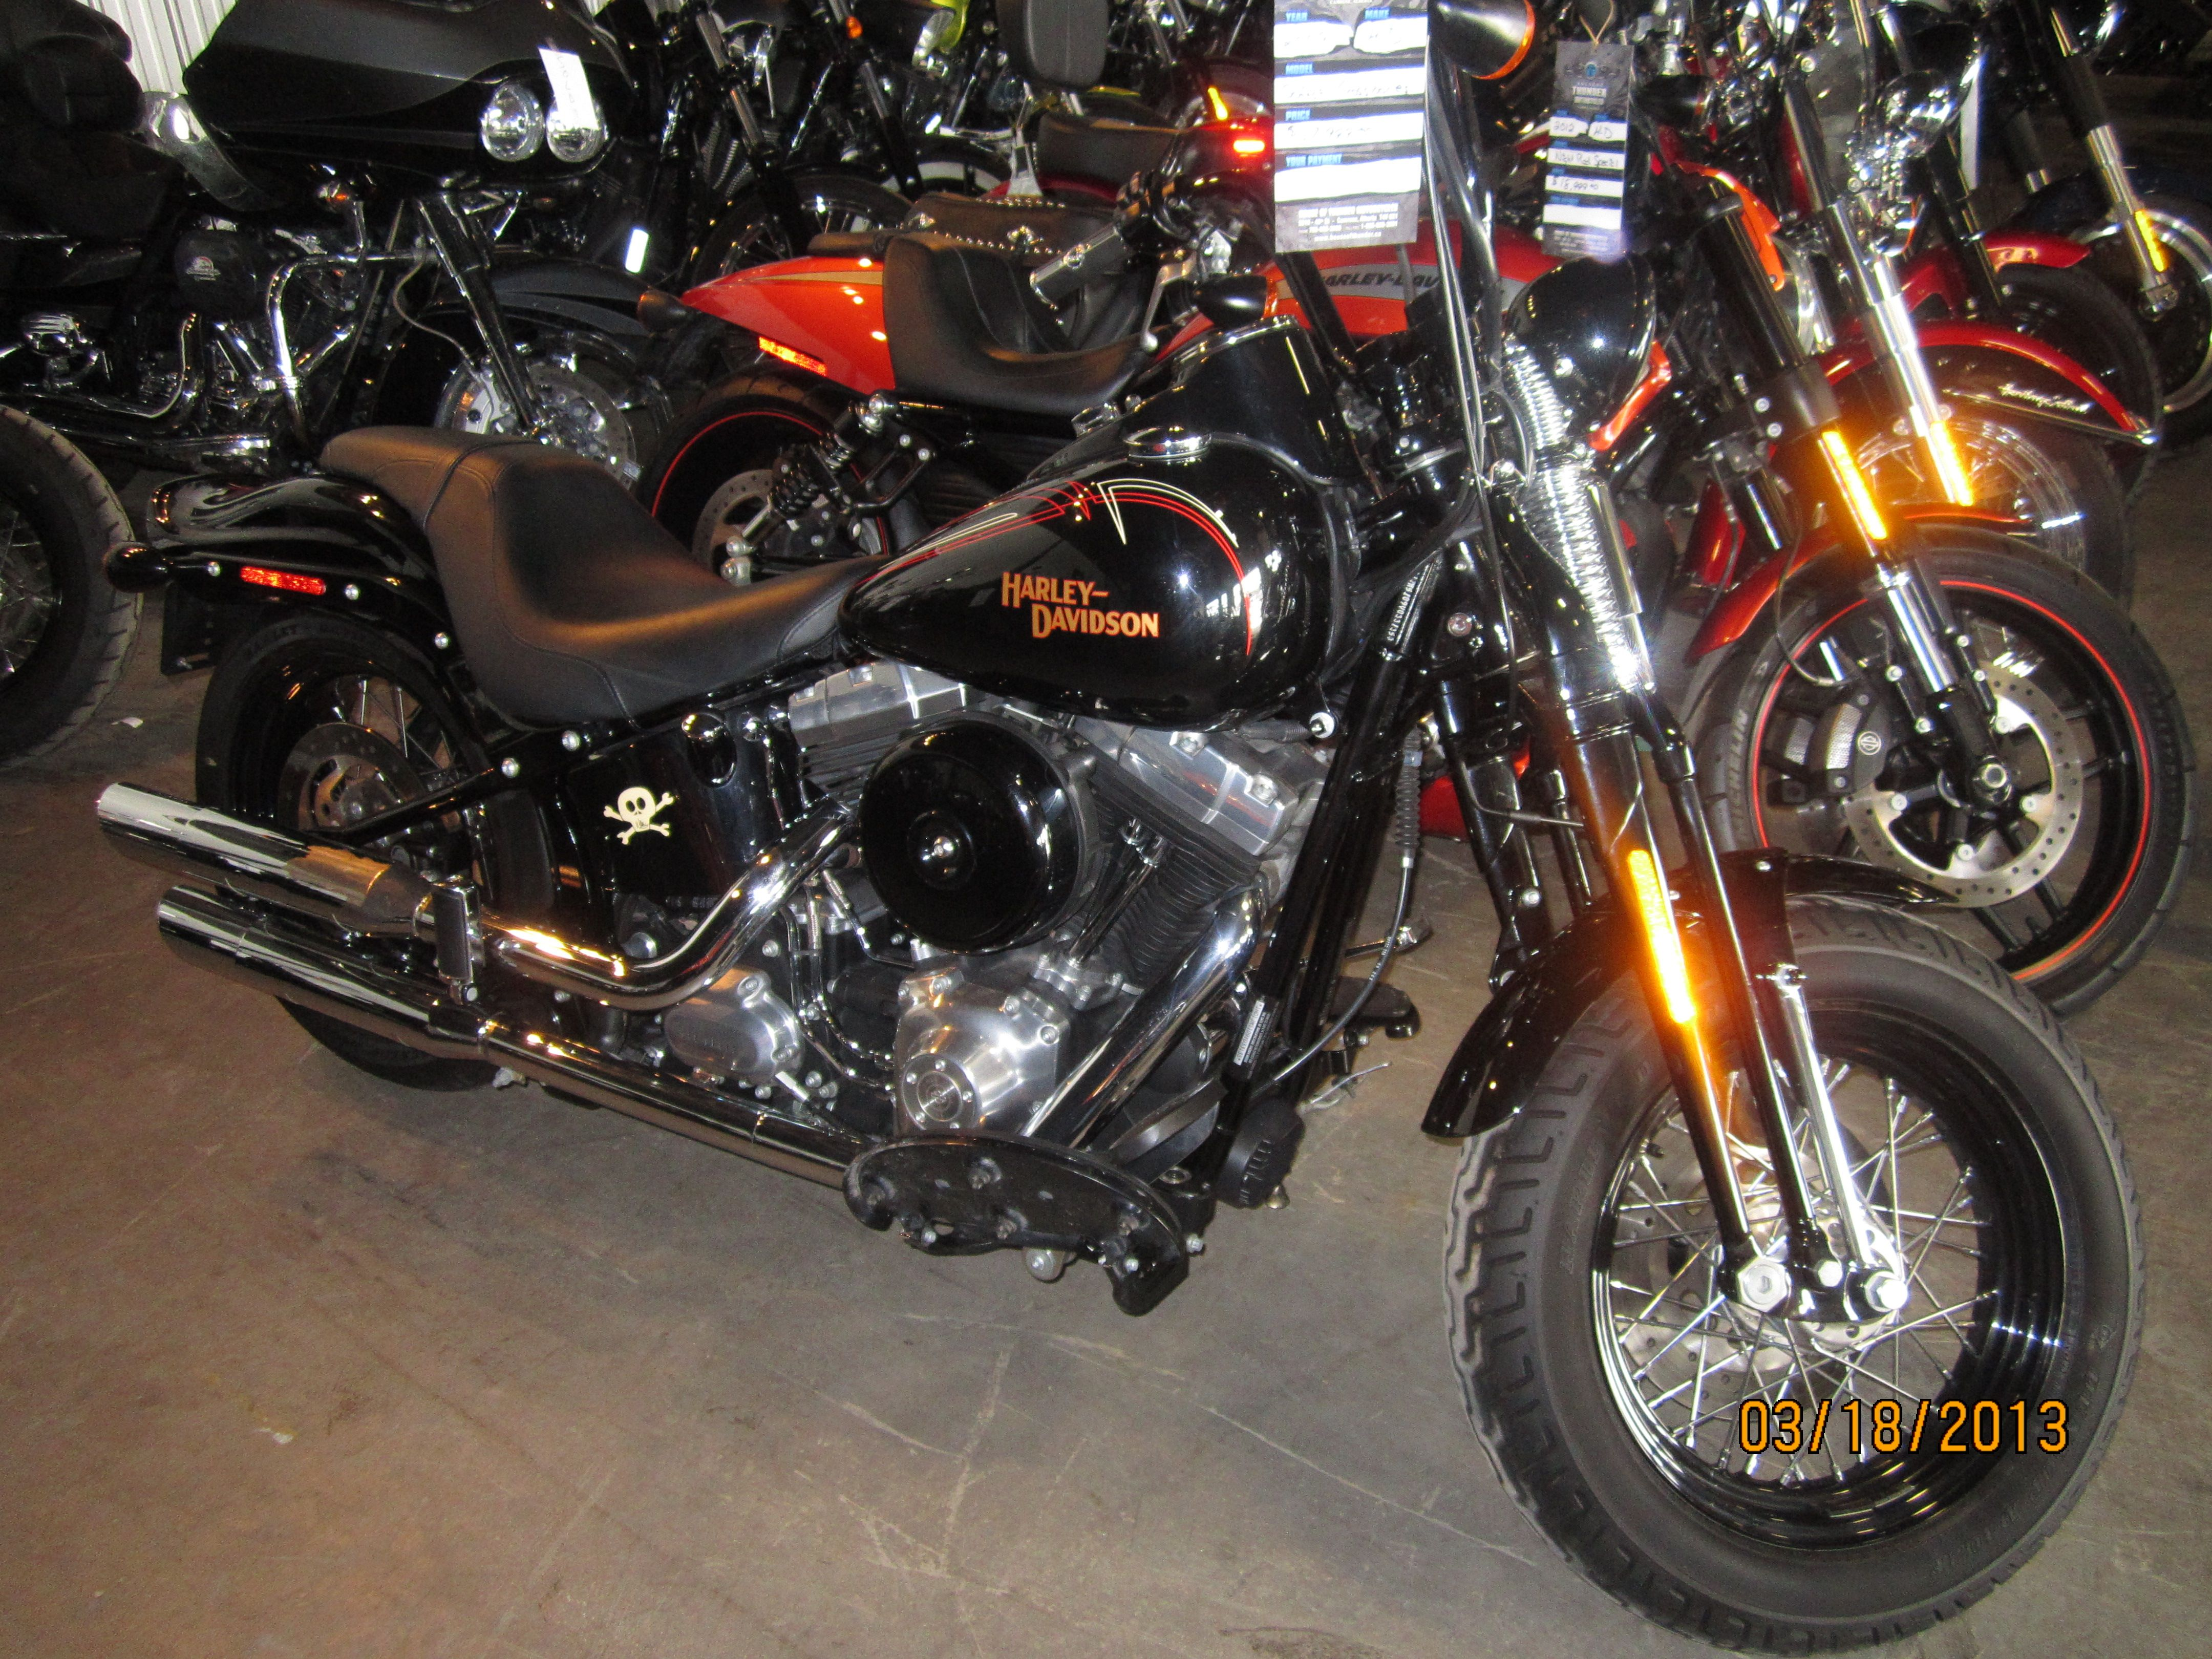 2009 Softail Crossbones 15680miles 17,999.00 Just Came in